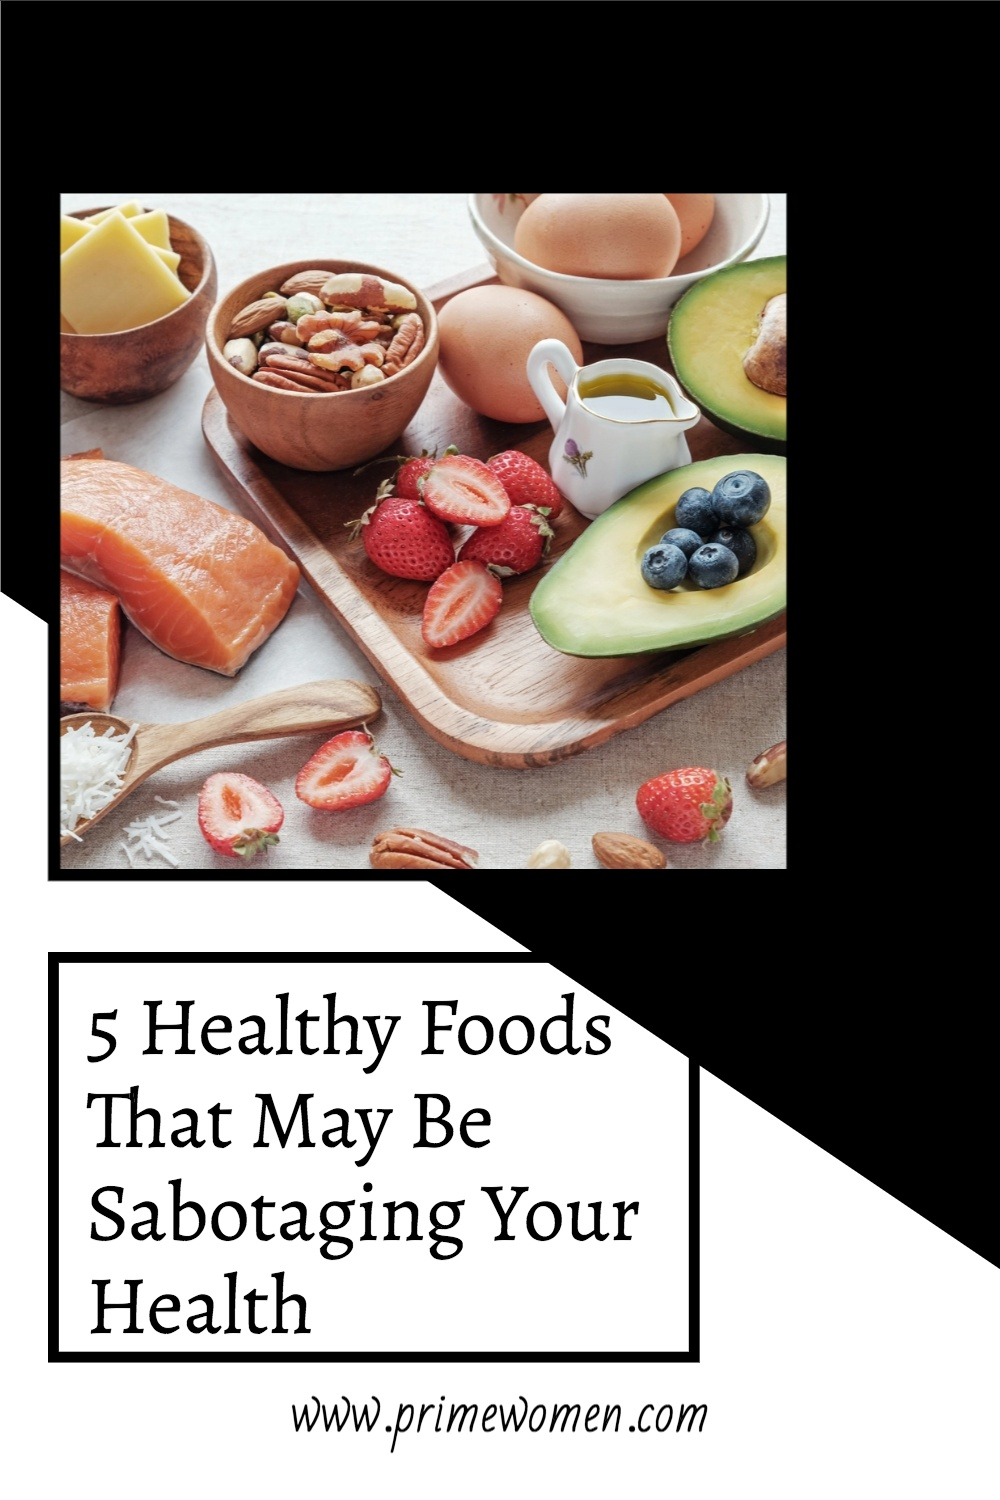 5 Healthy Foods that may be Sabotaging your Health